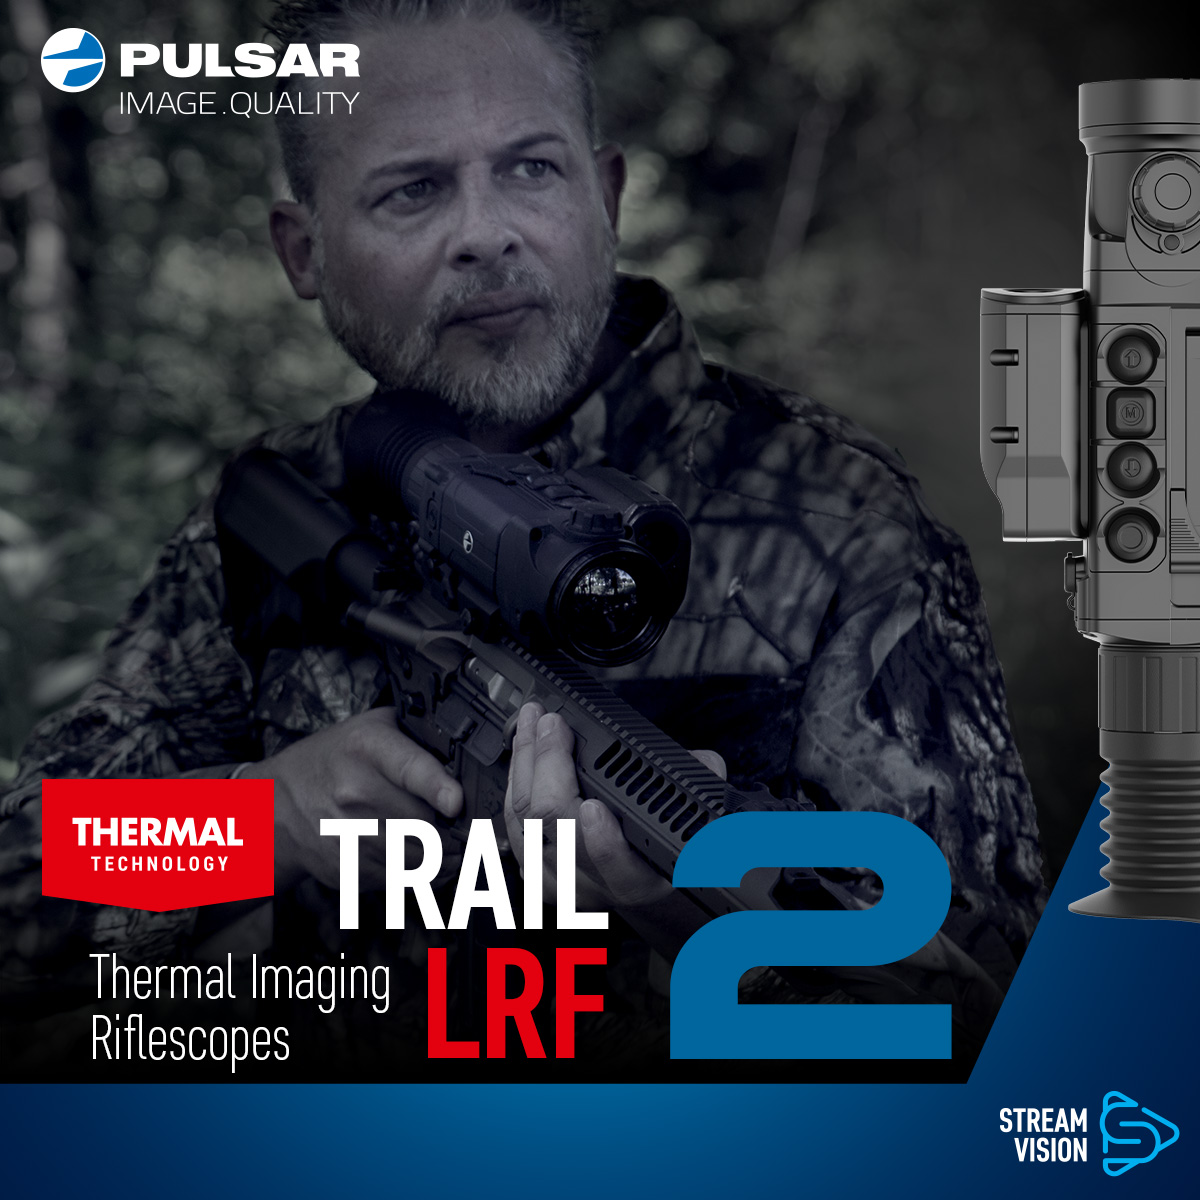 Trail 2 LRF Thermal Imaging Riflescopes